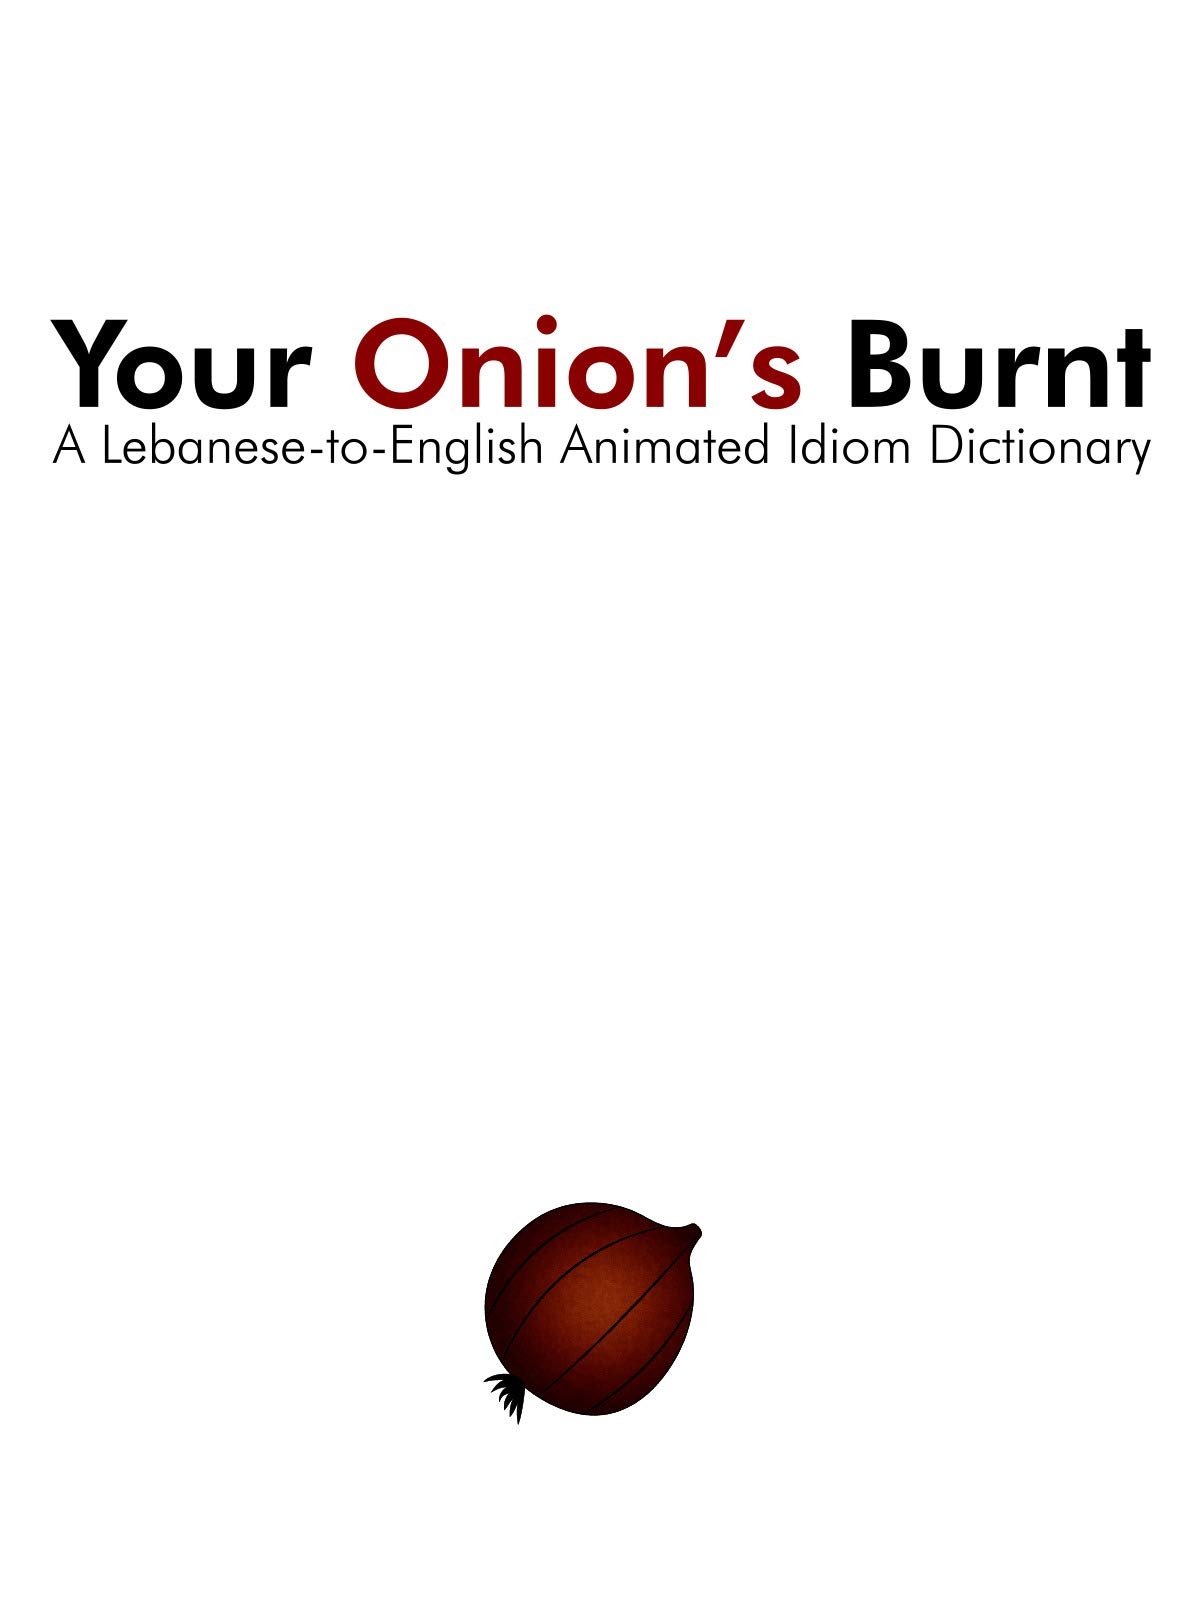 Your Onion's Burnt